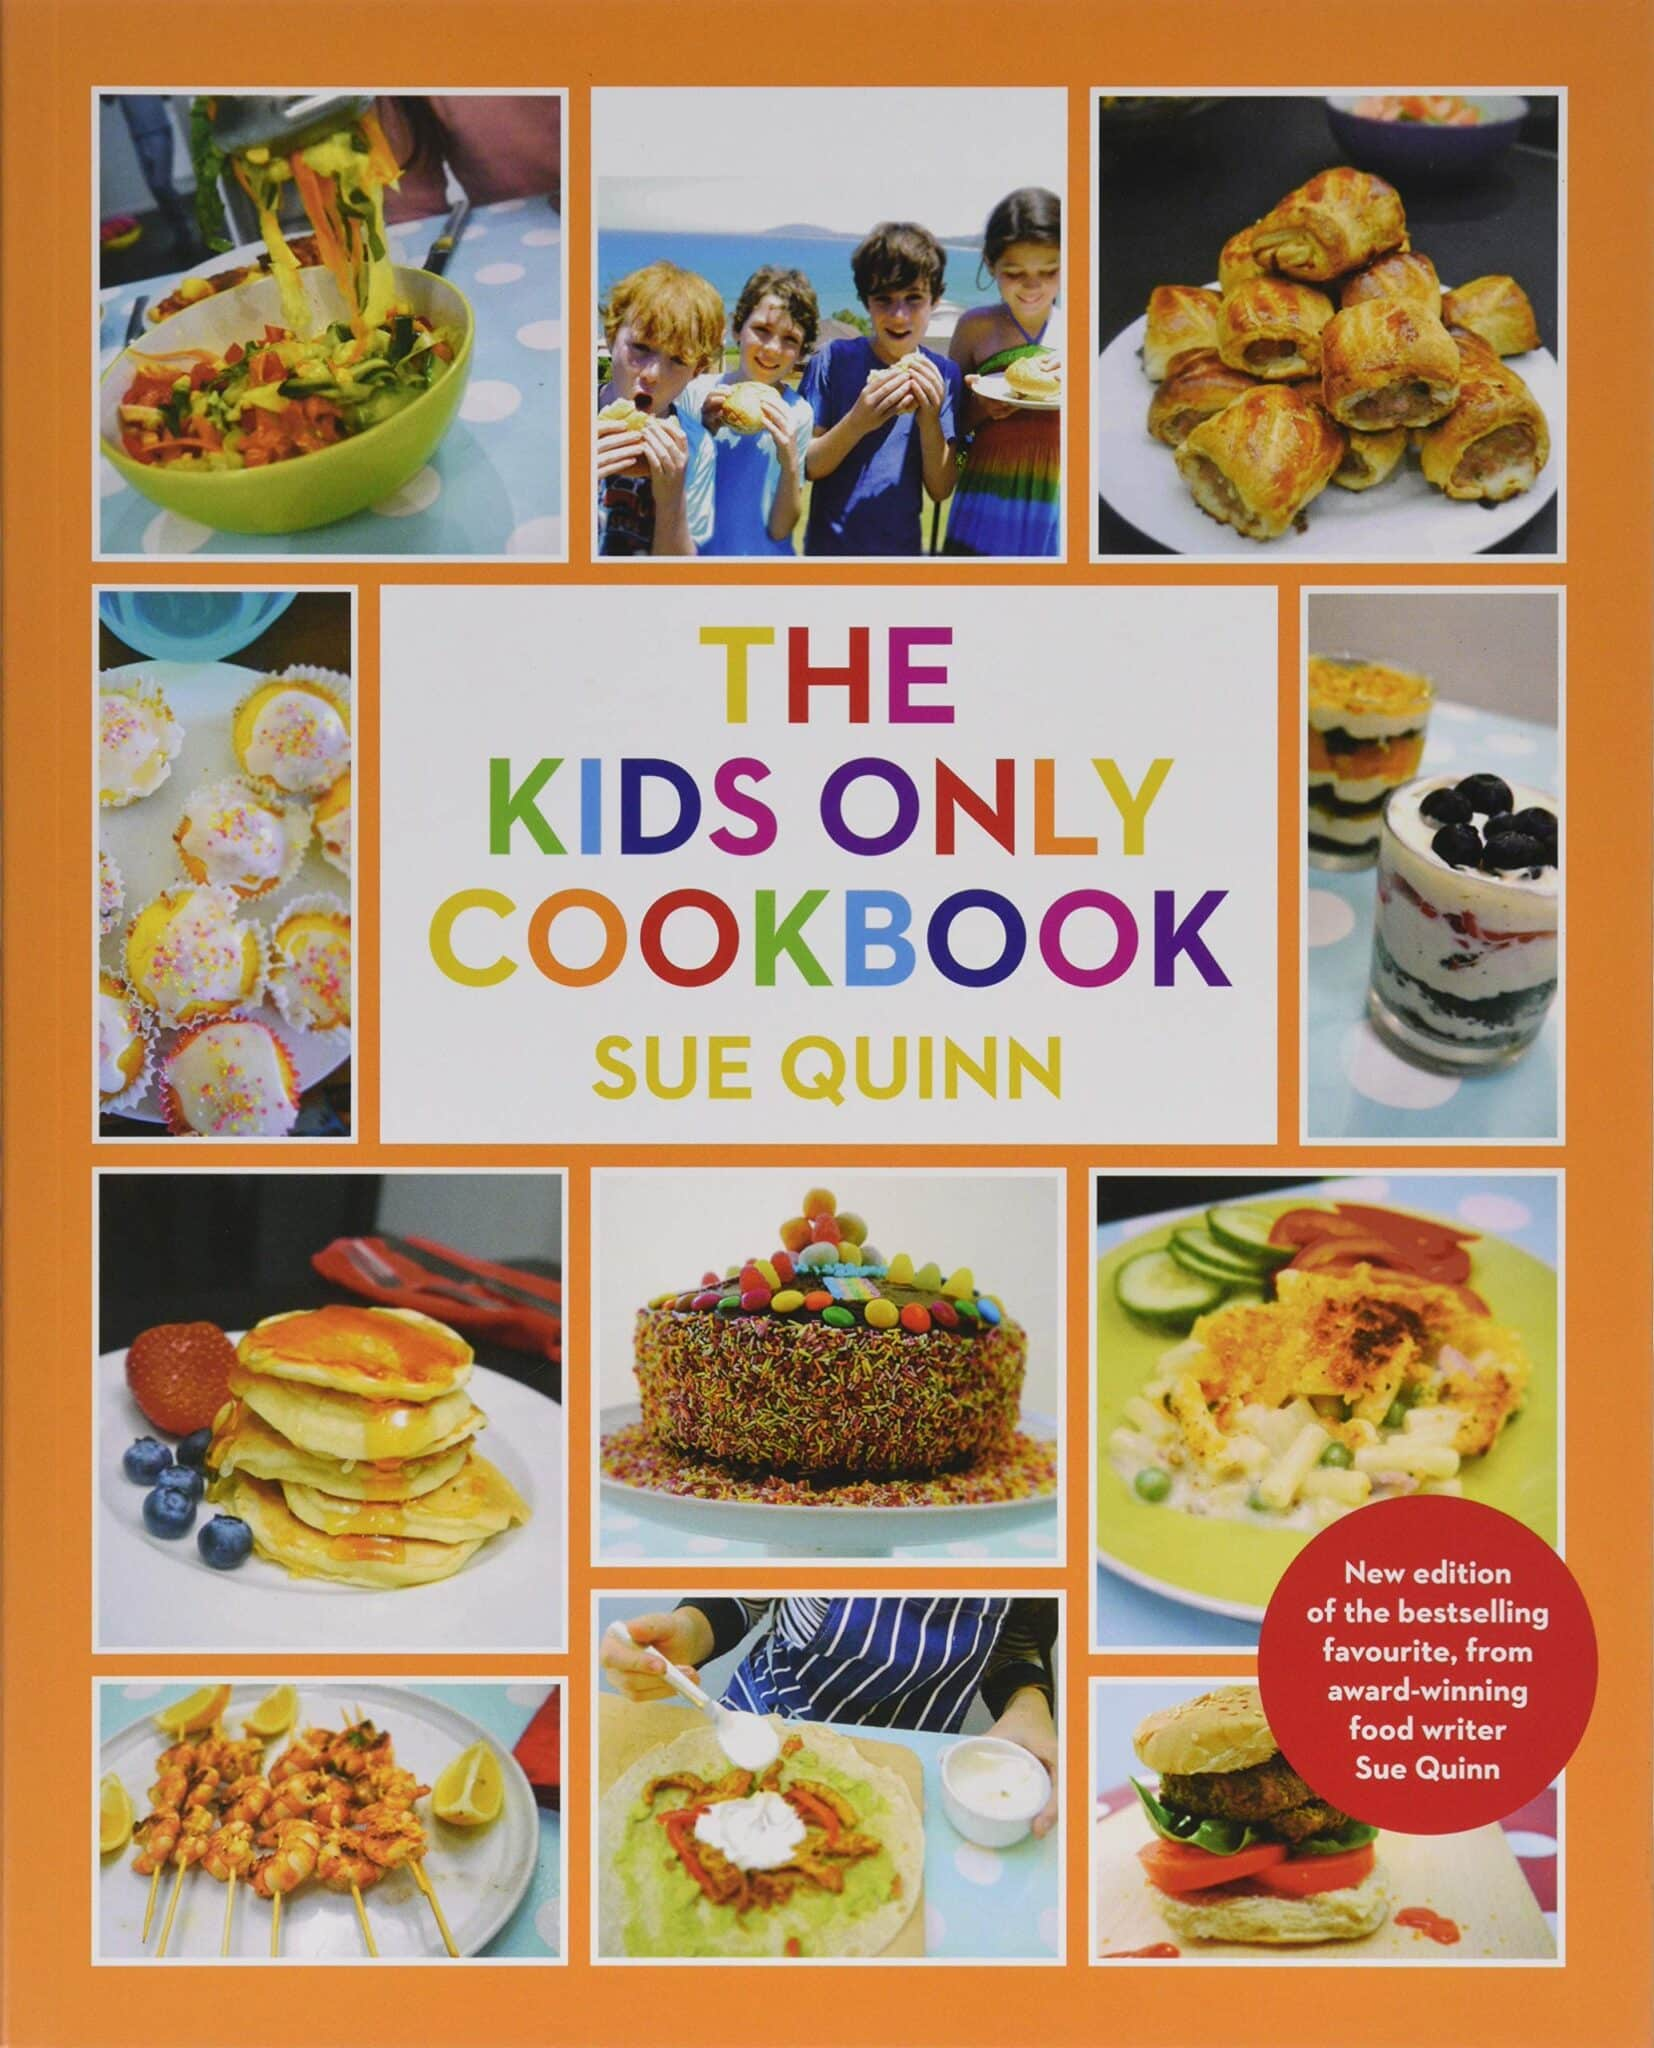 Cover photo of The Kids Only Cookbook by Sue Quinn